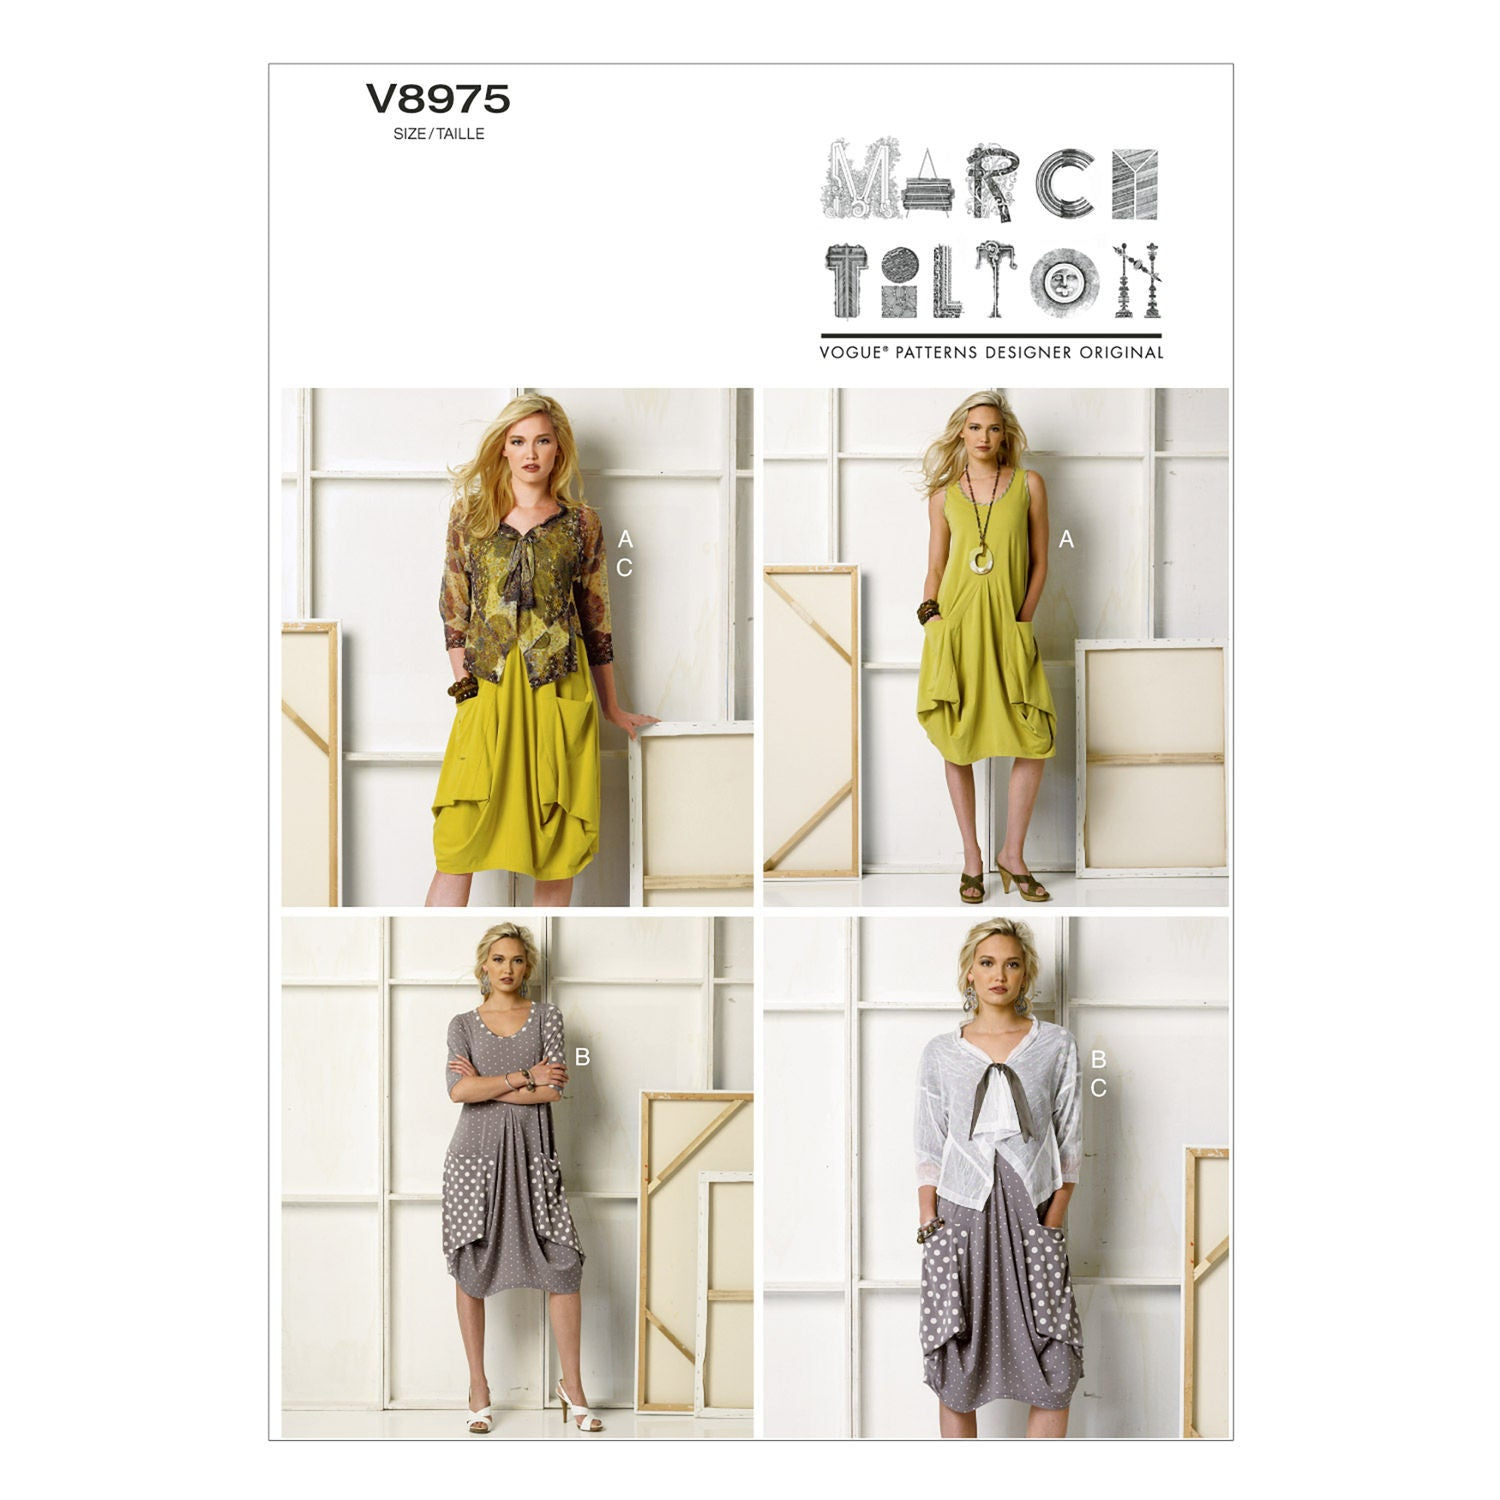 Vogue - V8975 Misses' Dress & Jacket by Marcy Tilton - WeaverDee.com Sewing & Crafts - 1